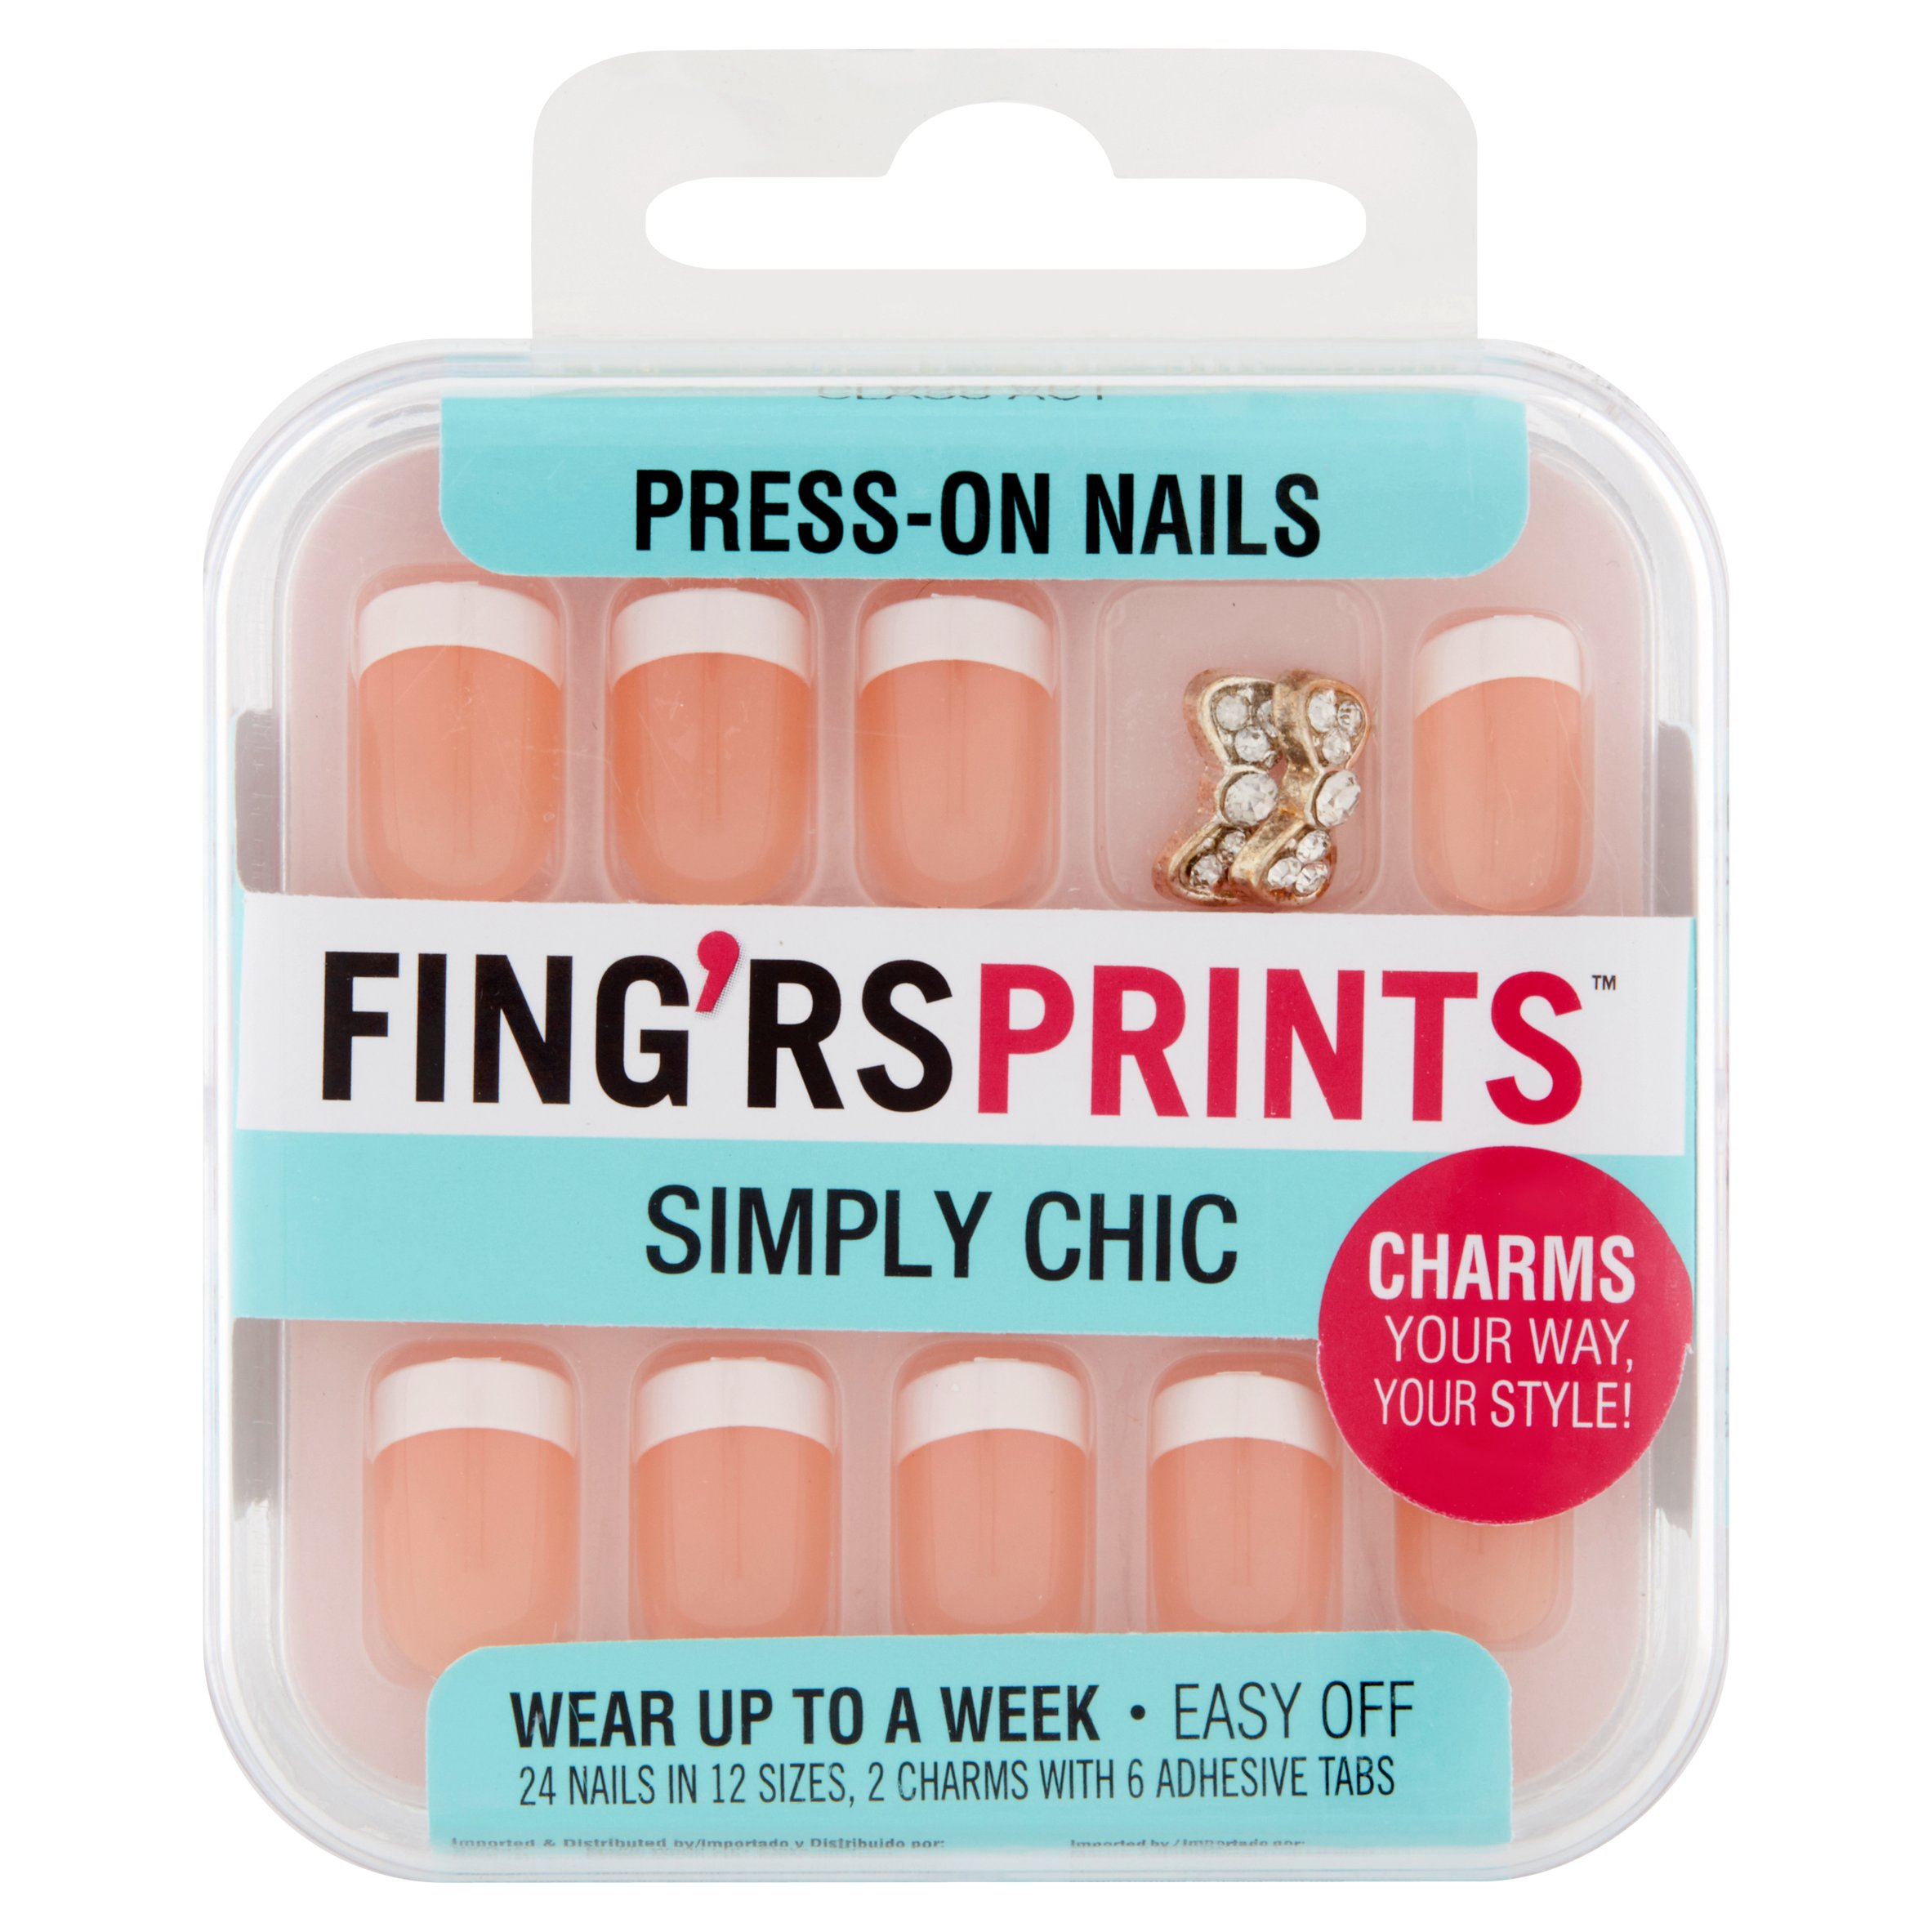 Fing'rs Prints Simply Chic Press-On Nails